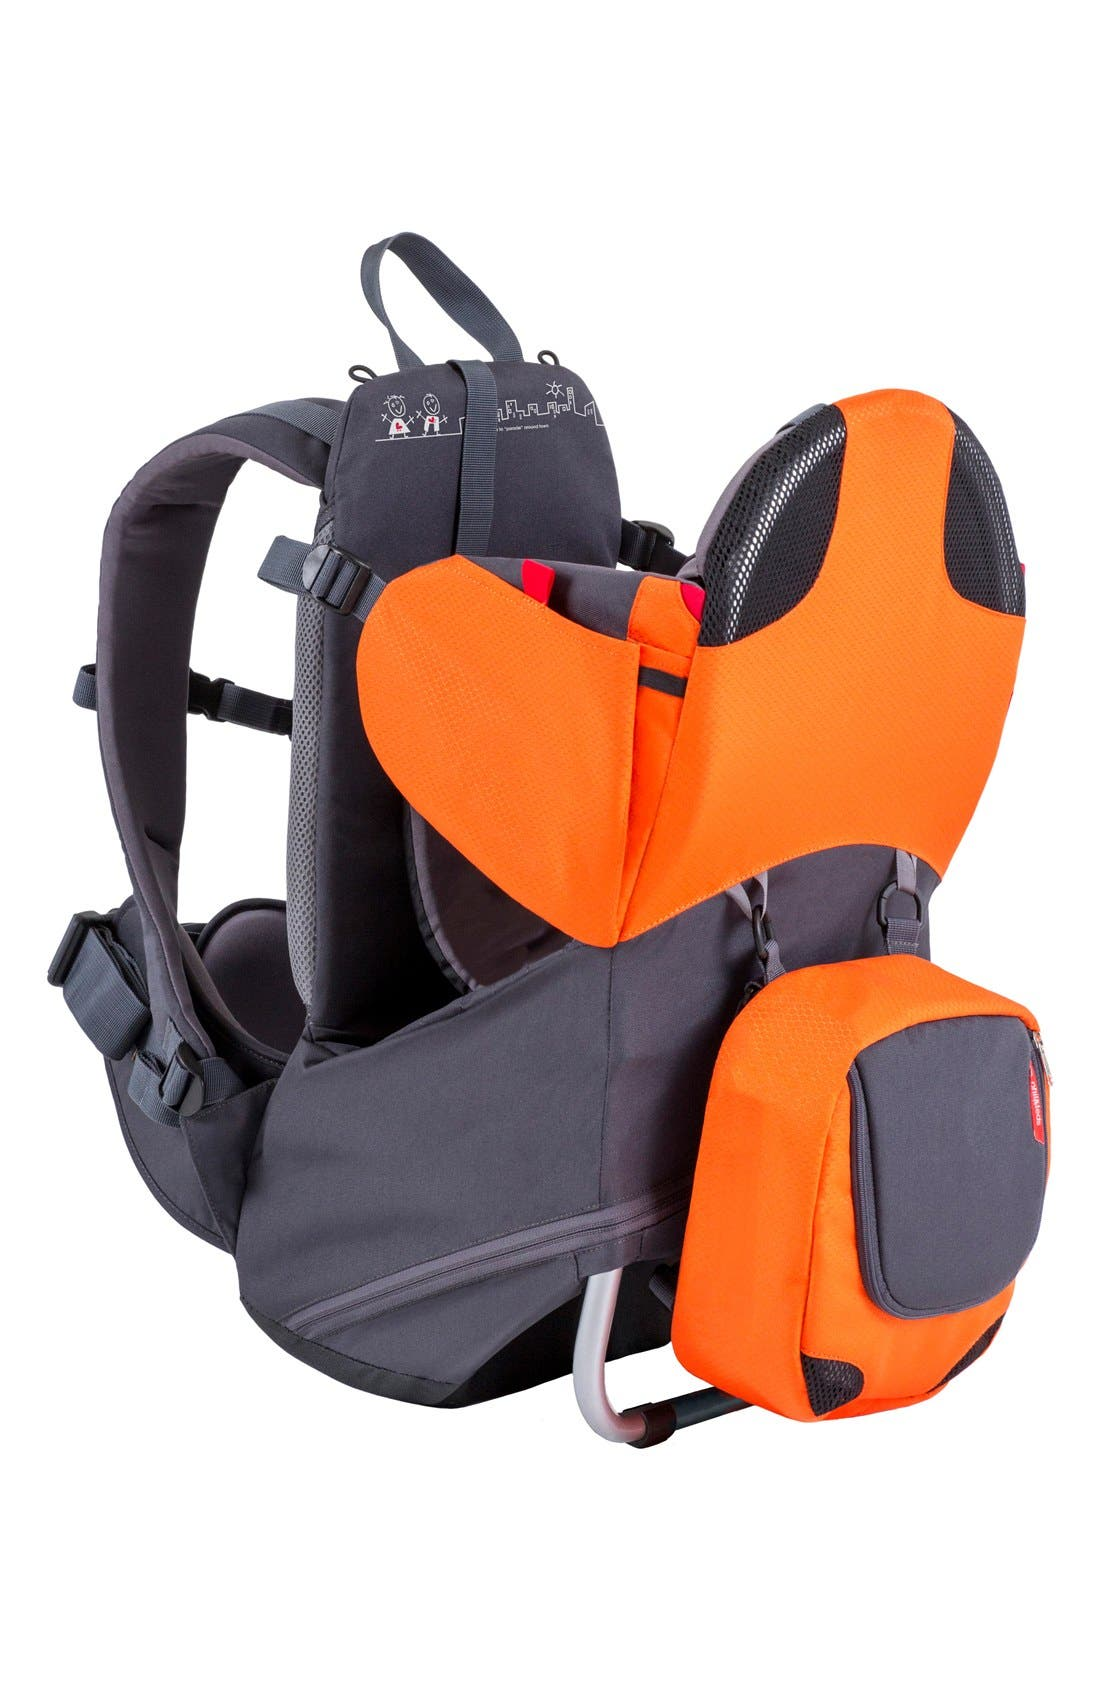 Main Image - Phil&Teds Baby Gear  'Parade' Backpack Carrier